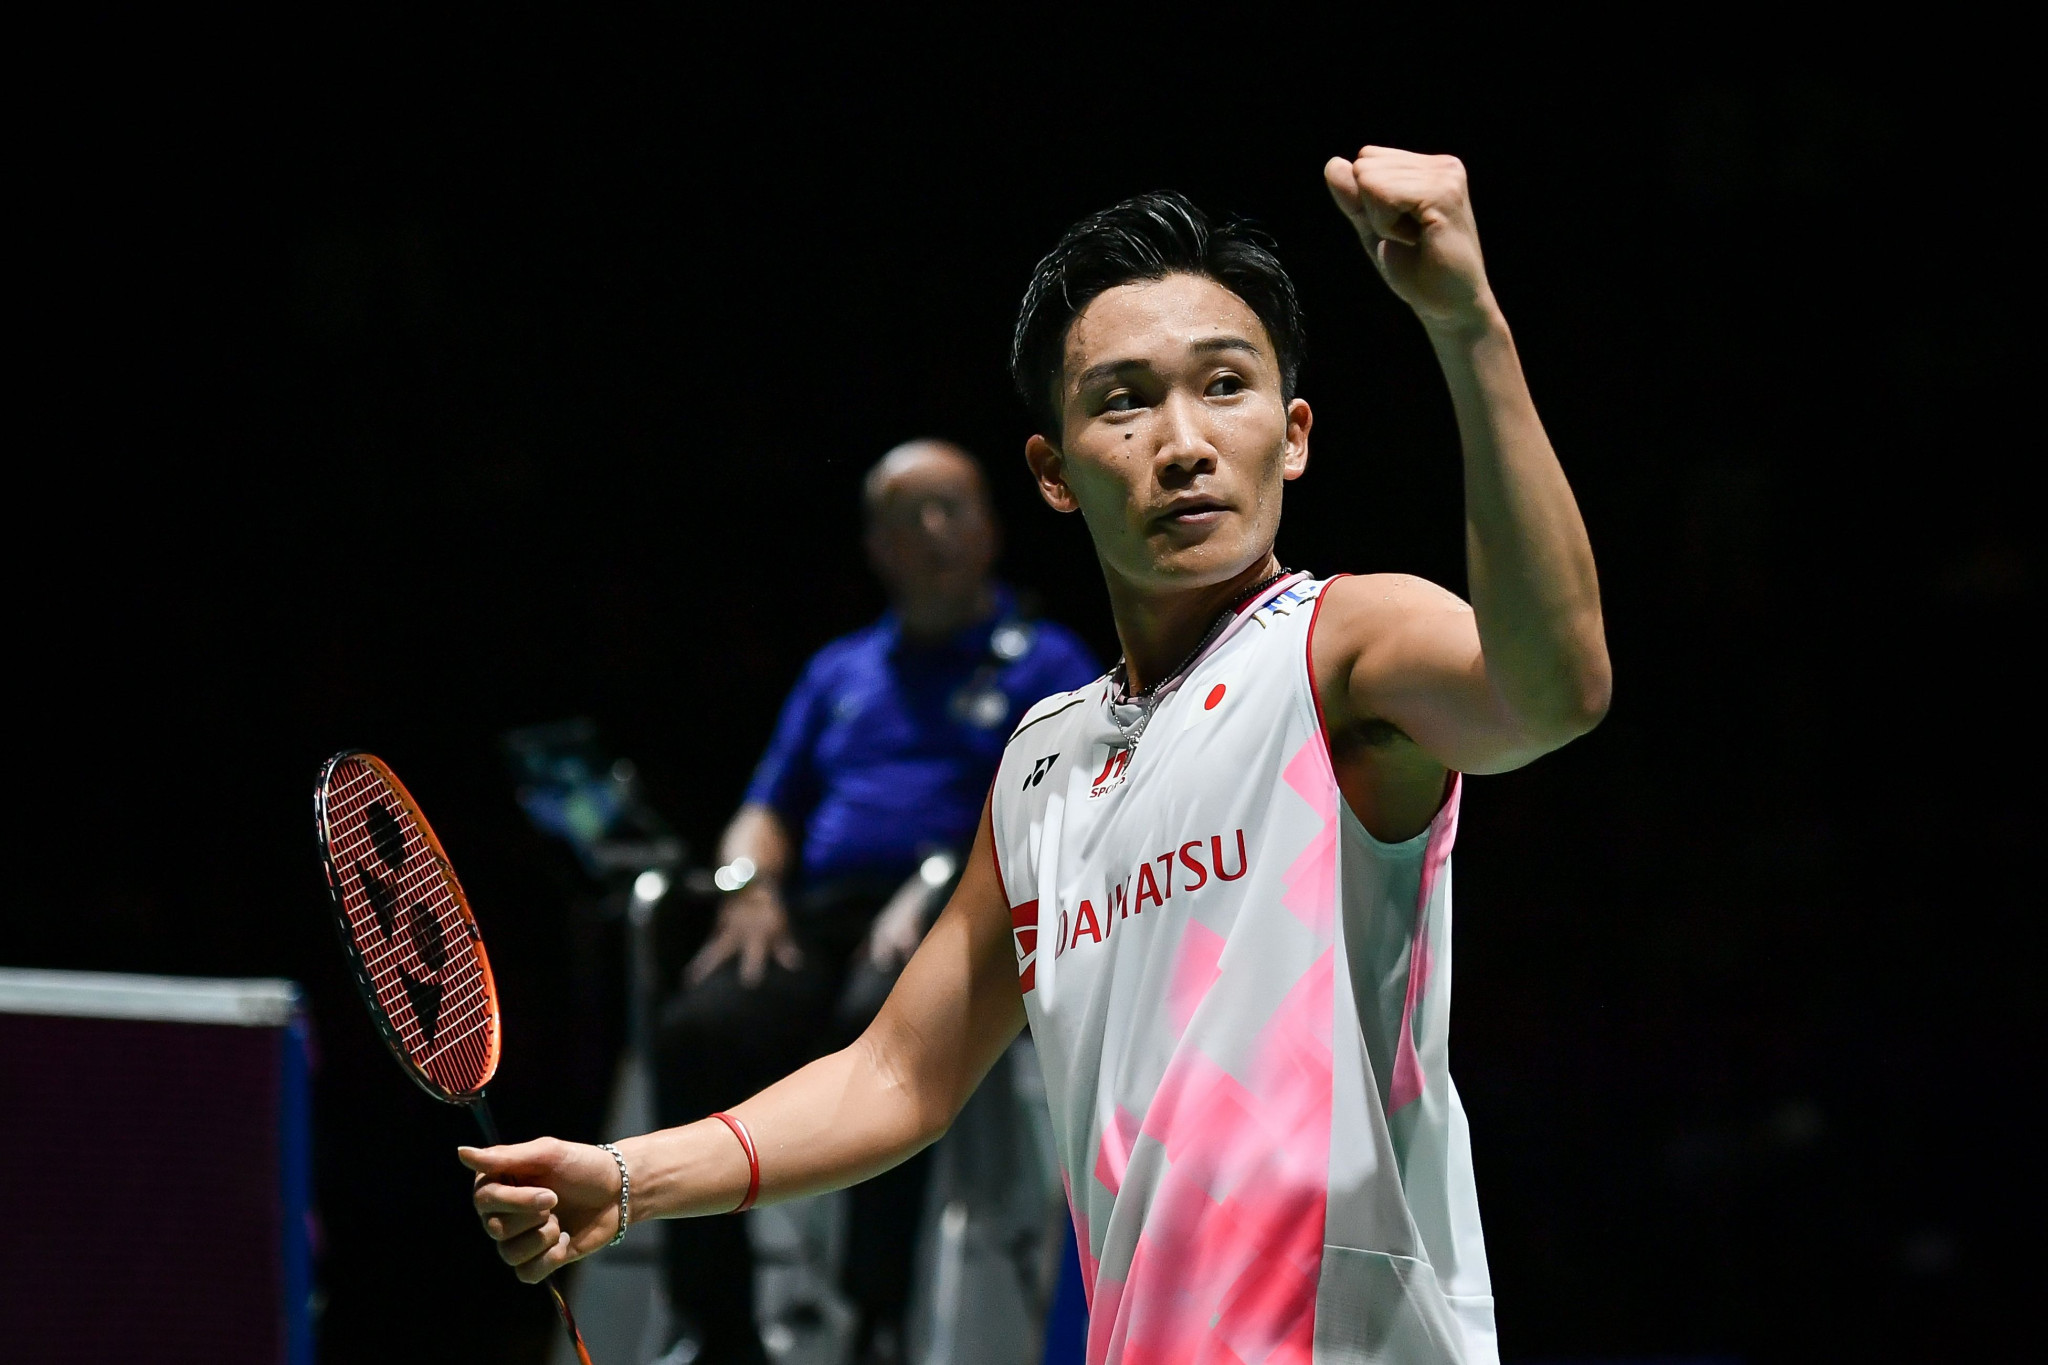 Defending champion Kento Momota progressed to the men's singles final ©Getty Images